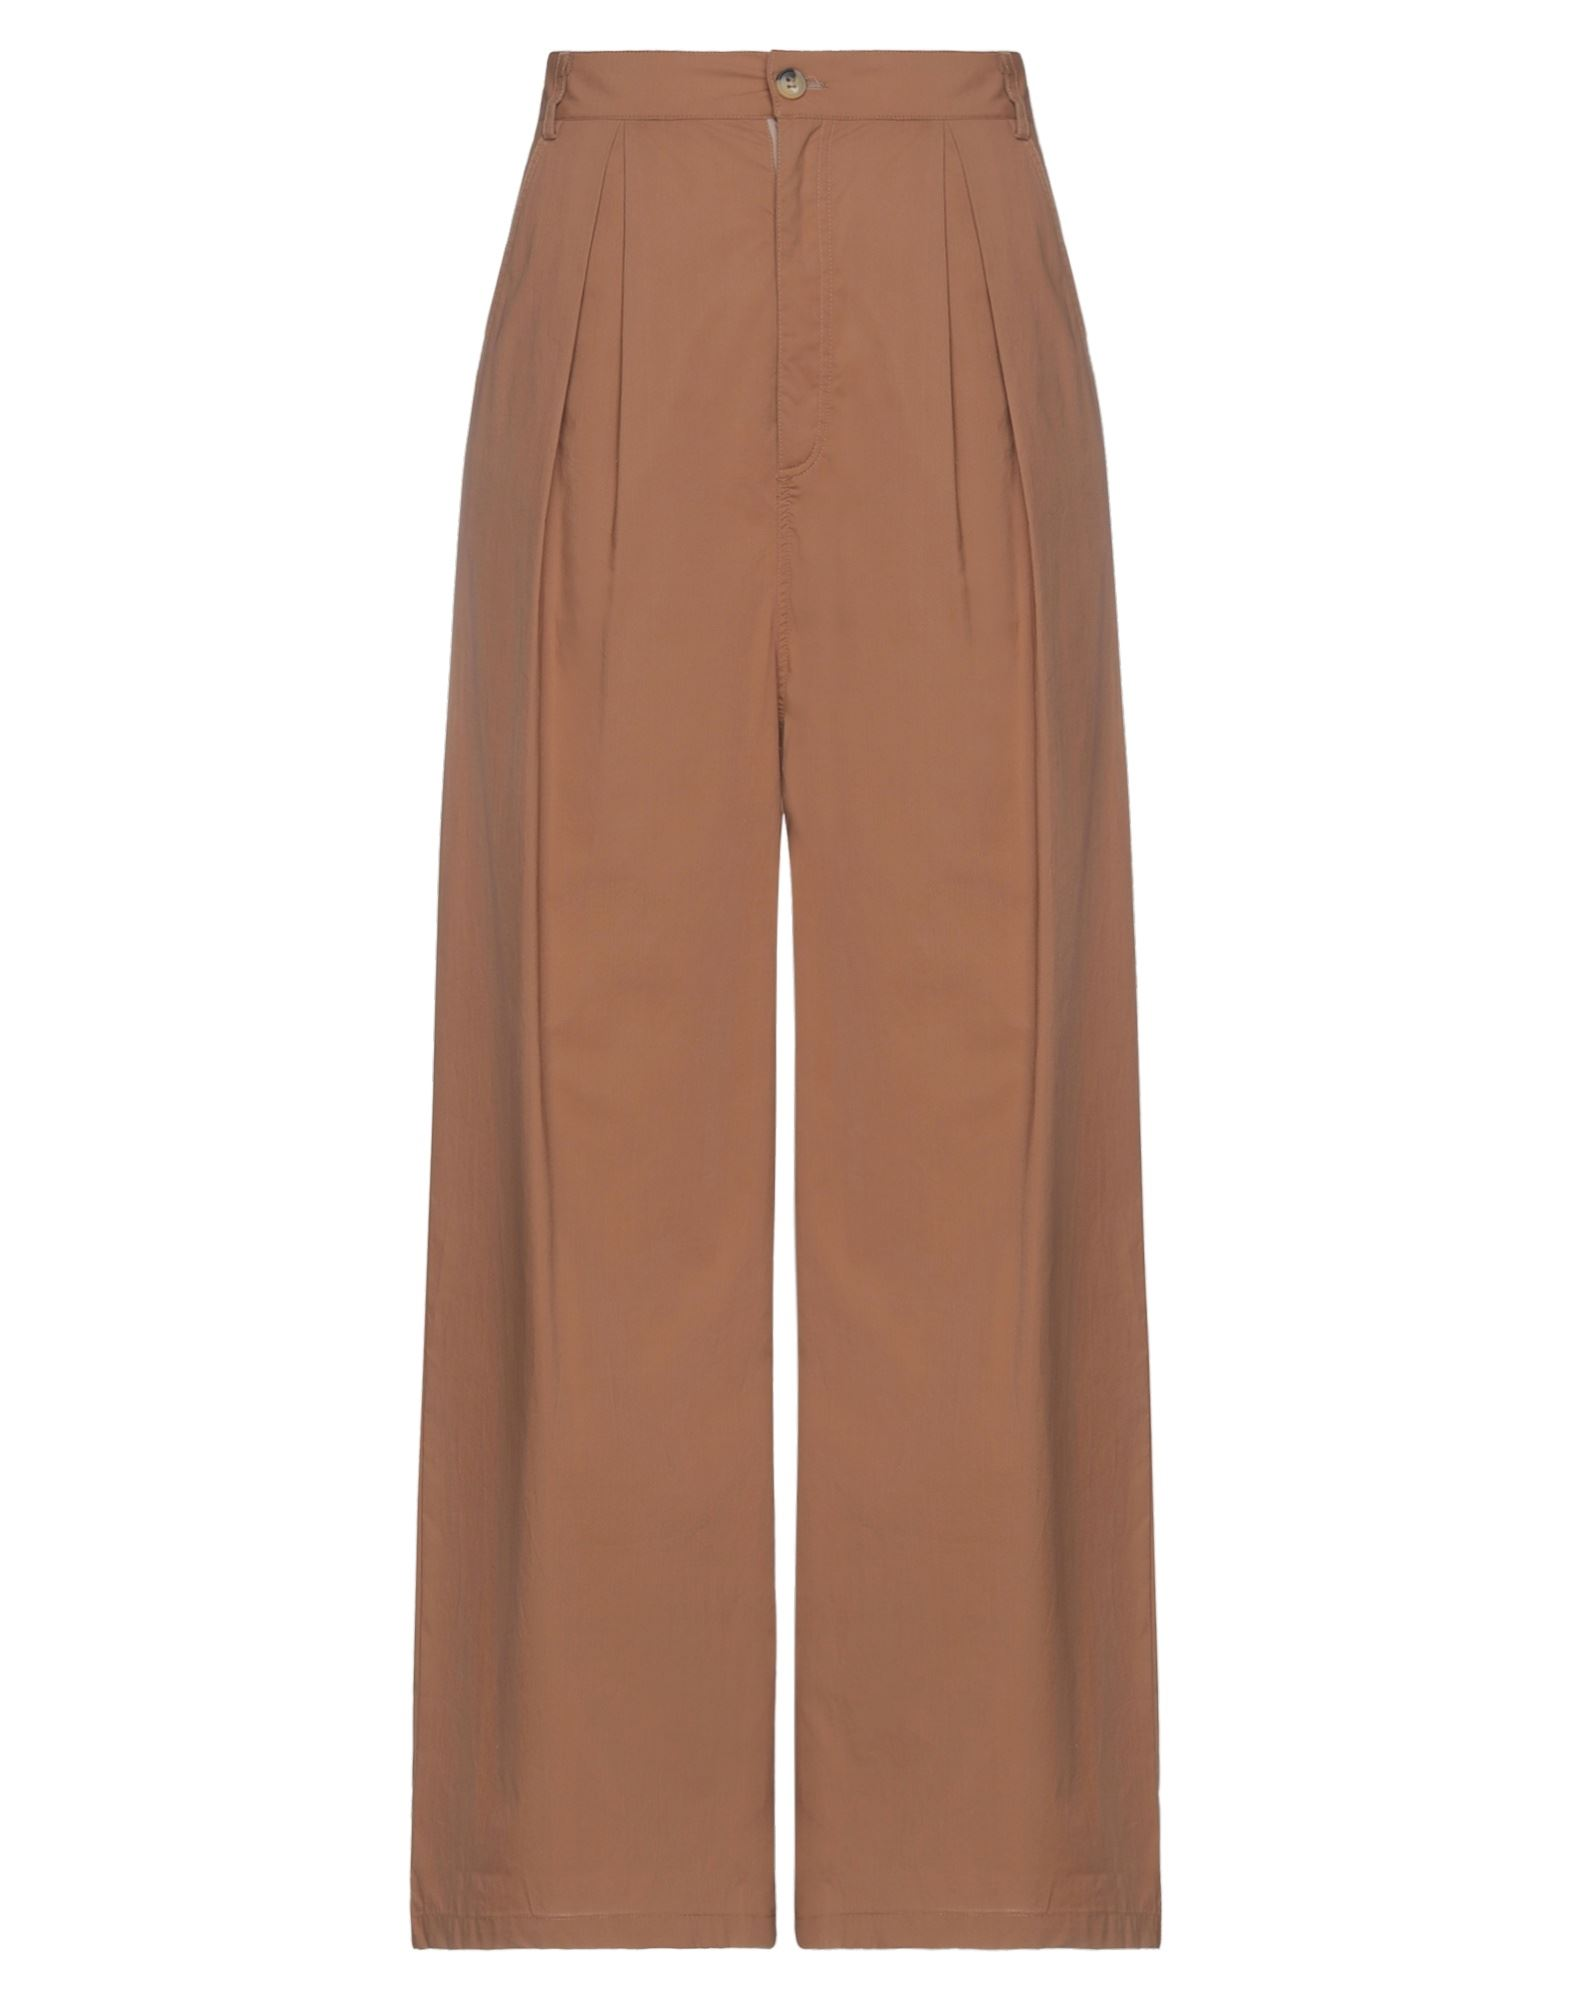 Rue 8isquit Casual Pants In Brown